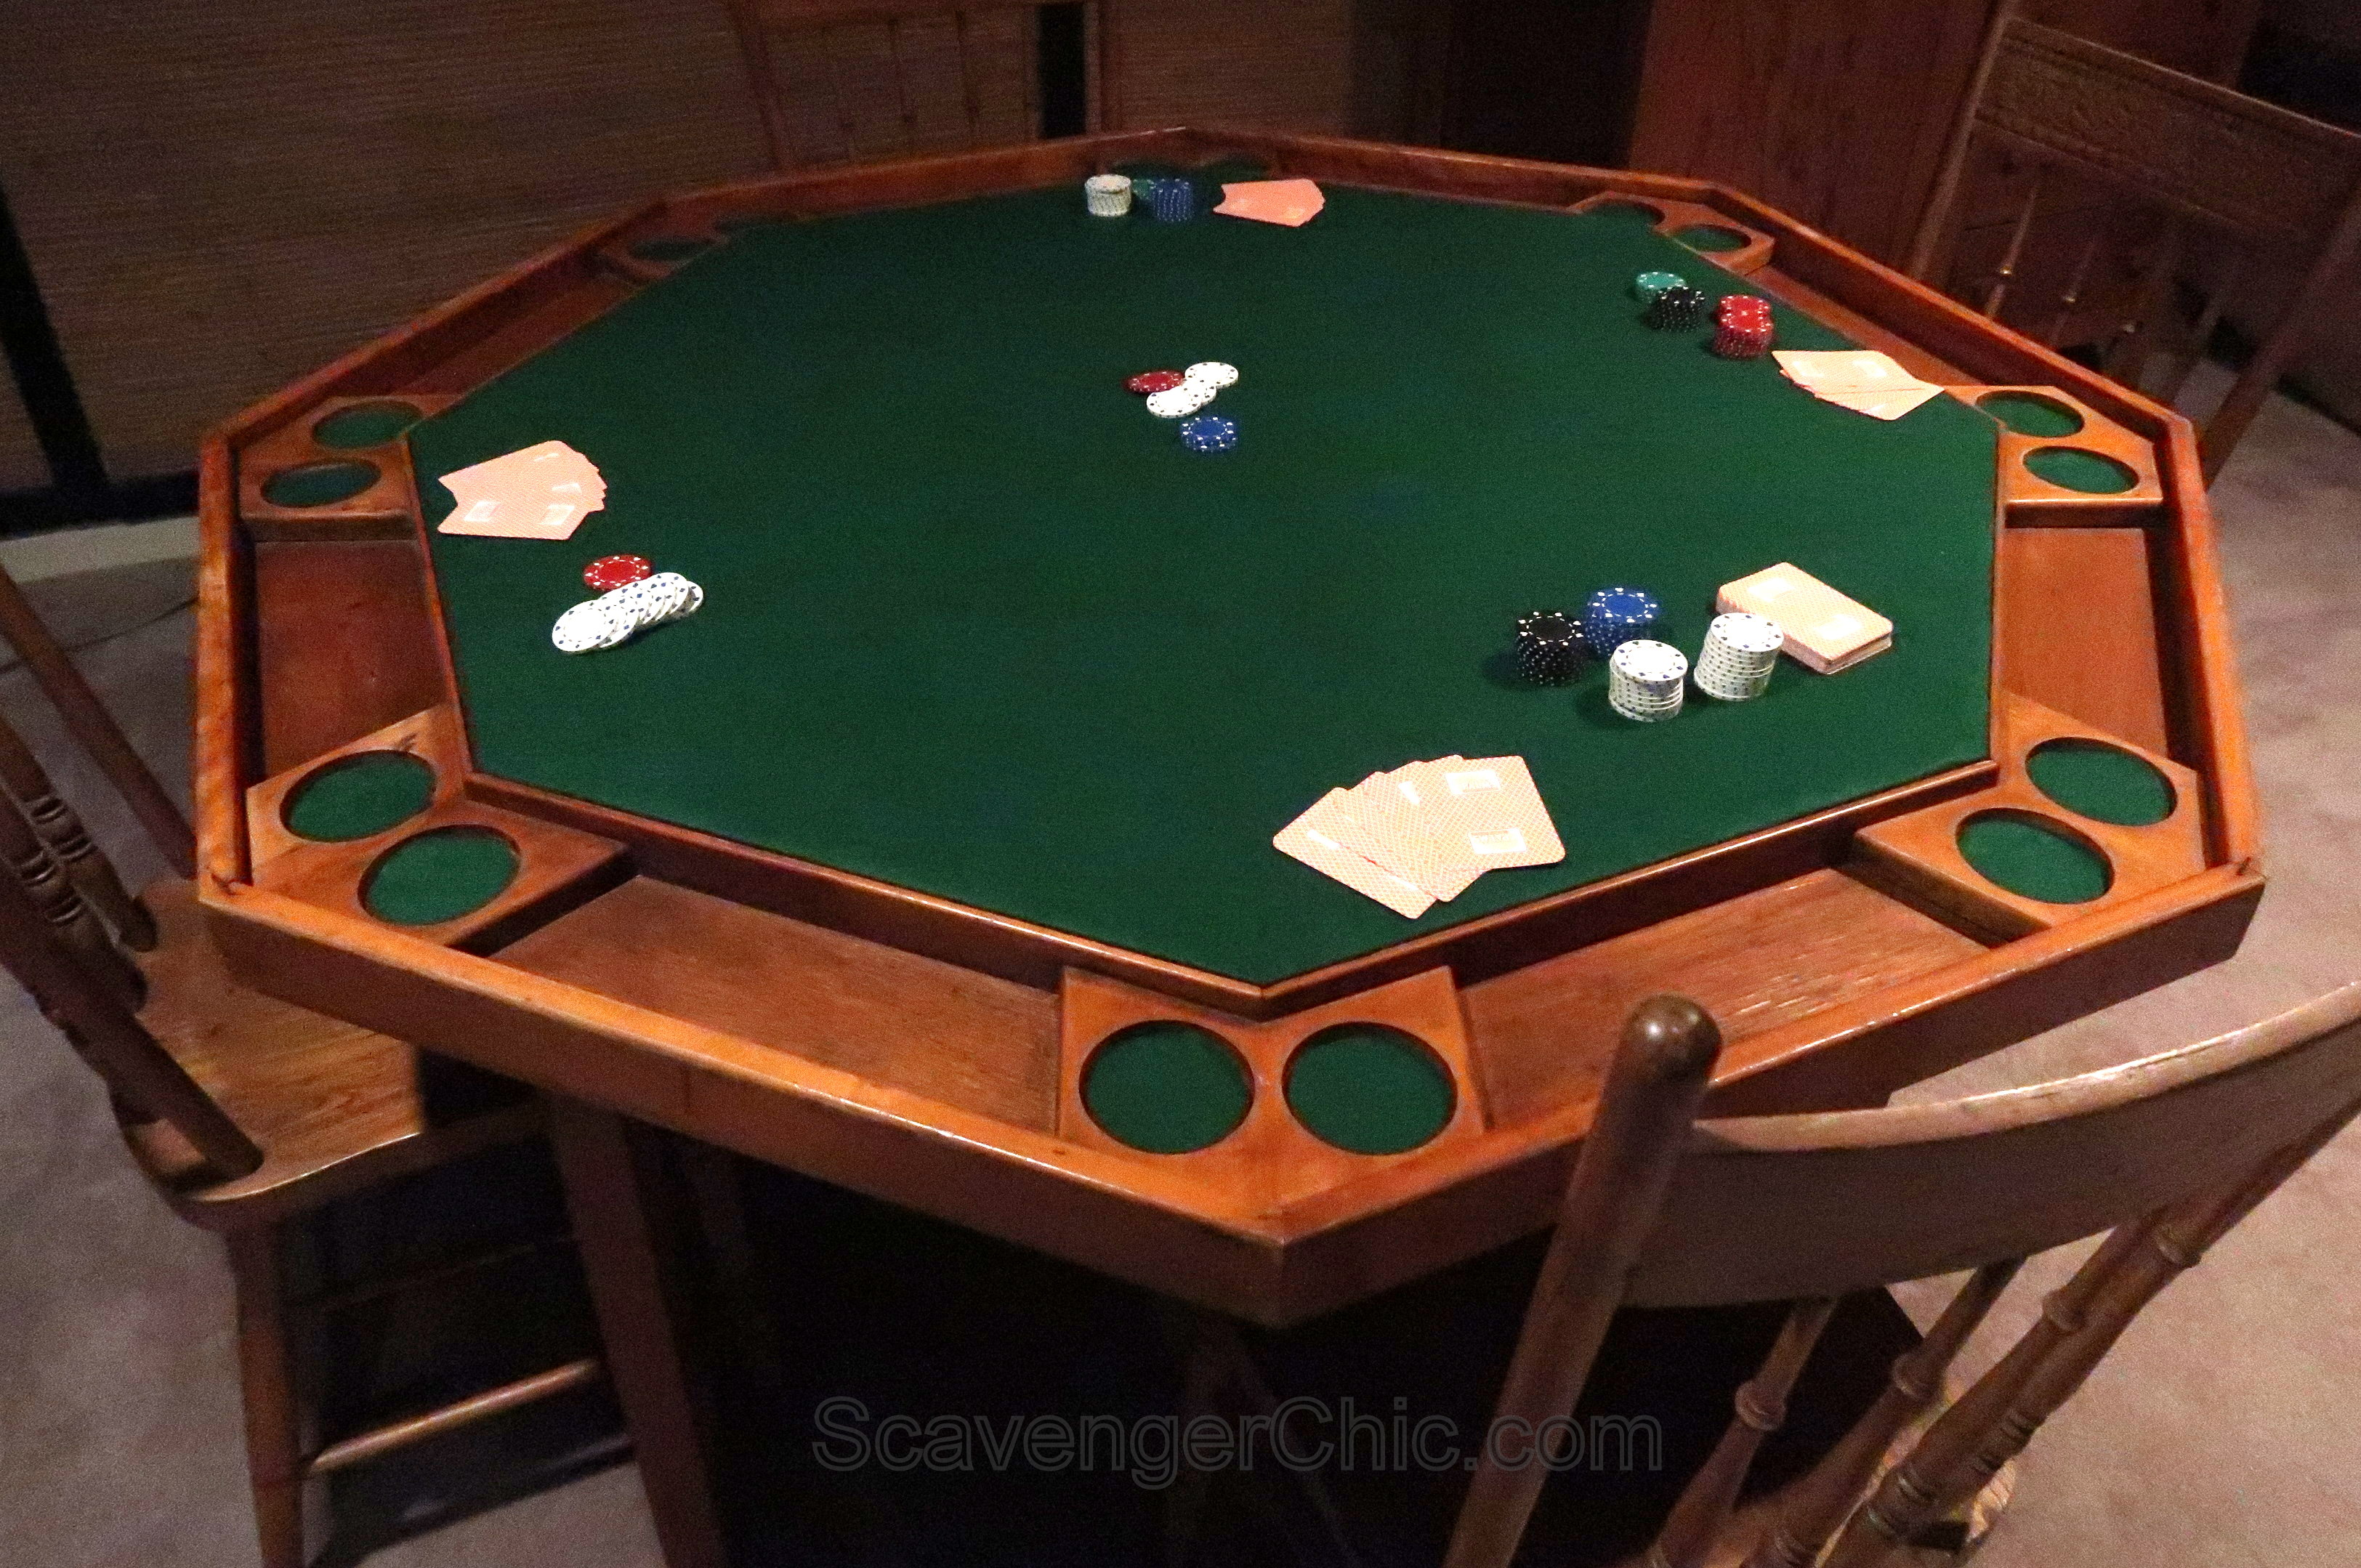 Flea Market Find and Refelting a Poker Table - Scavenger Chic